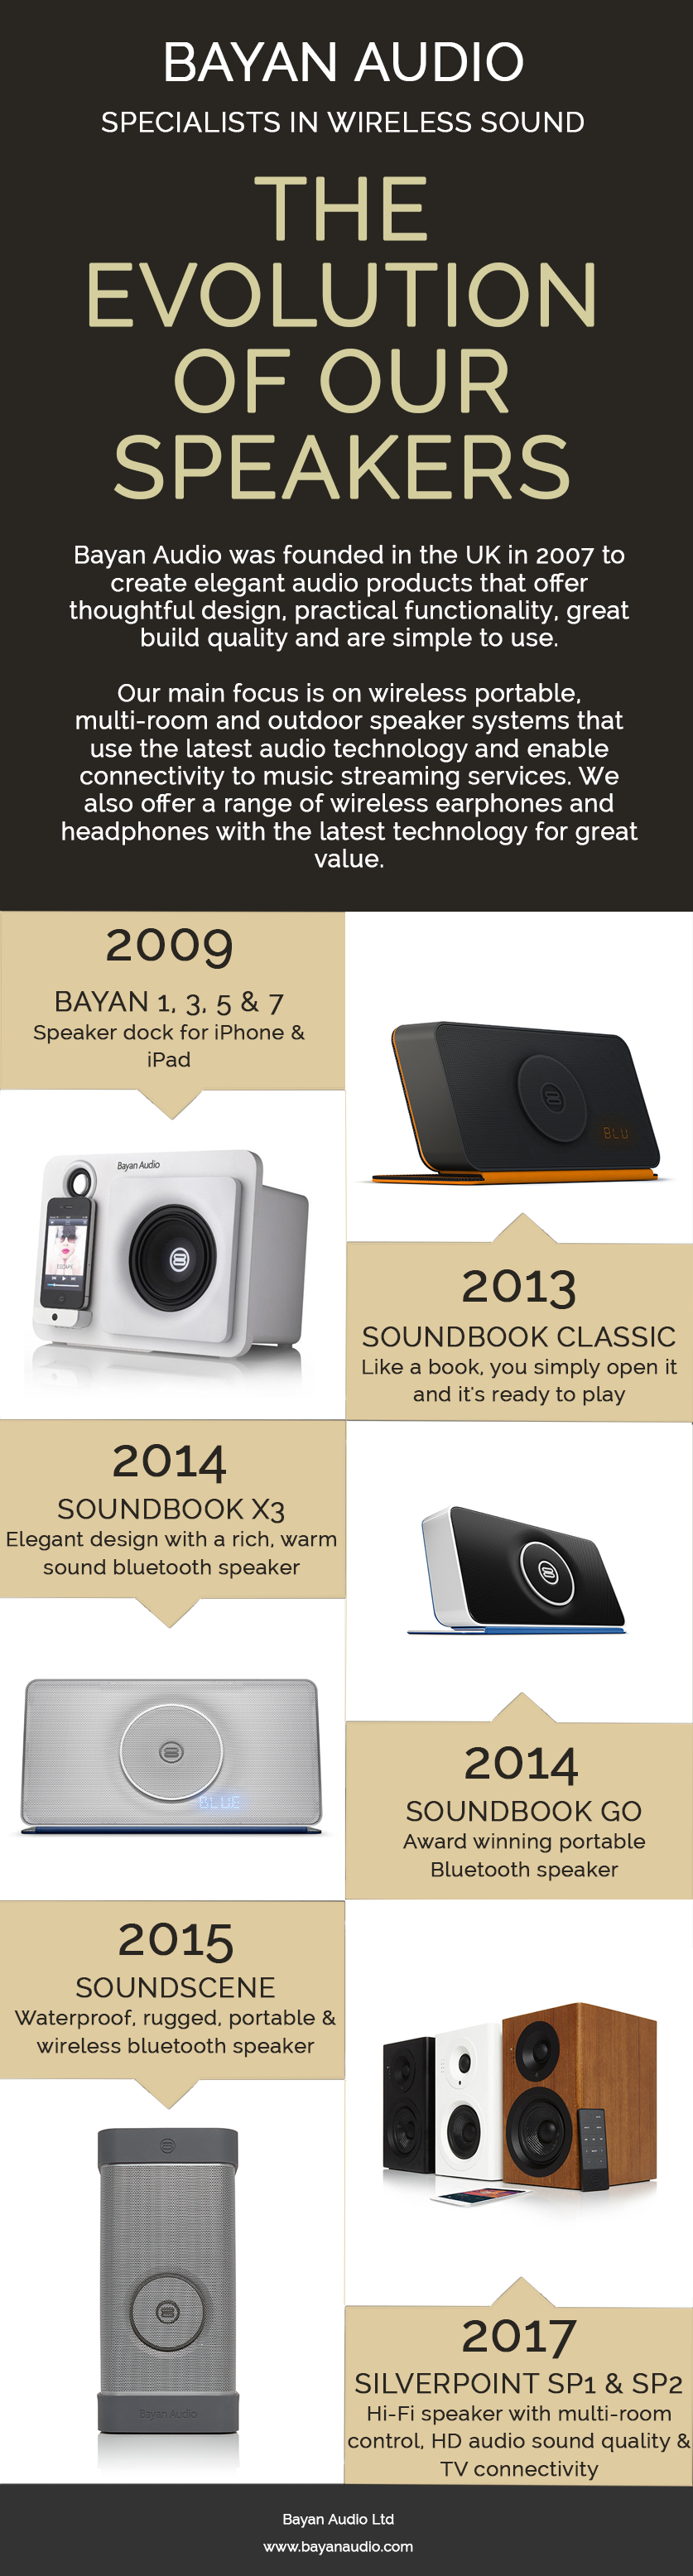 Bayan Audio infographic - The evolution of our speaker